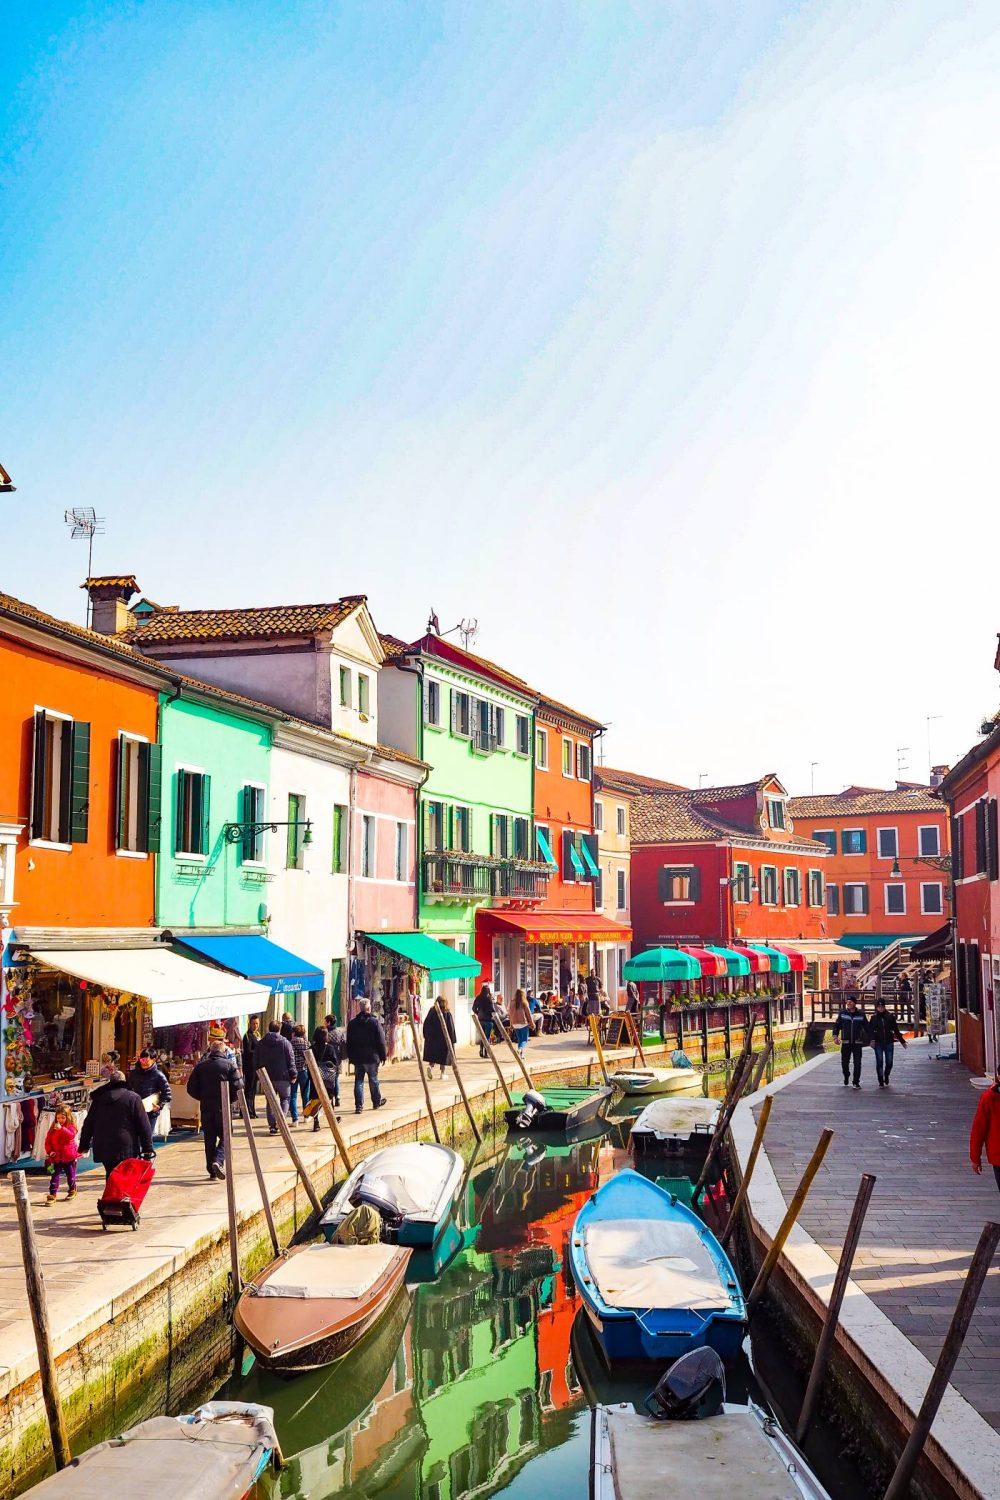 Canals and Rainbow houses in Burano, Venice